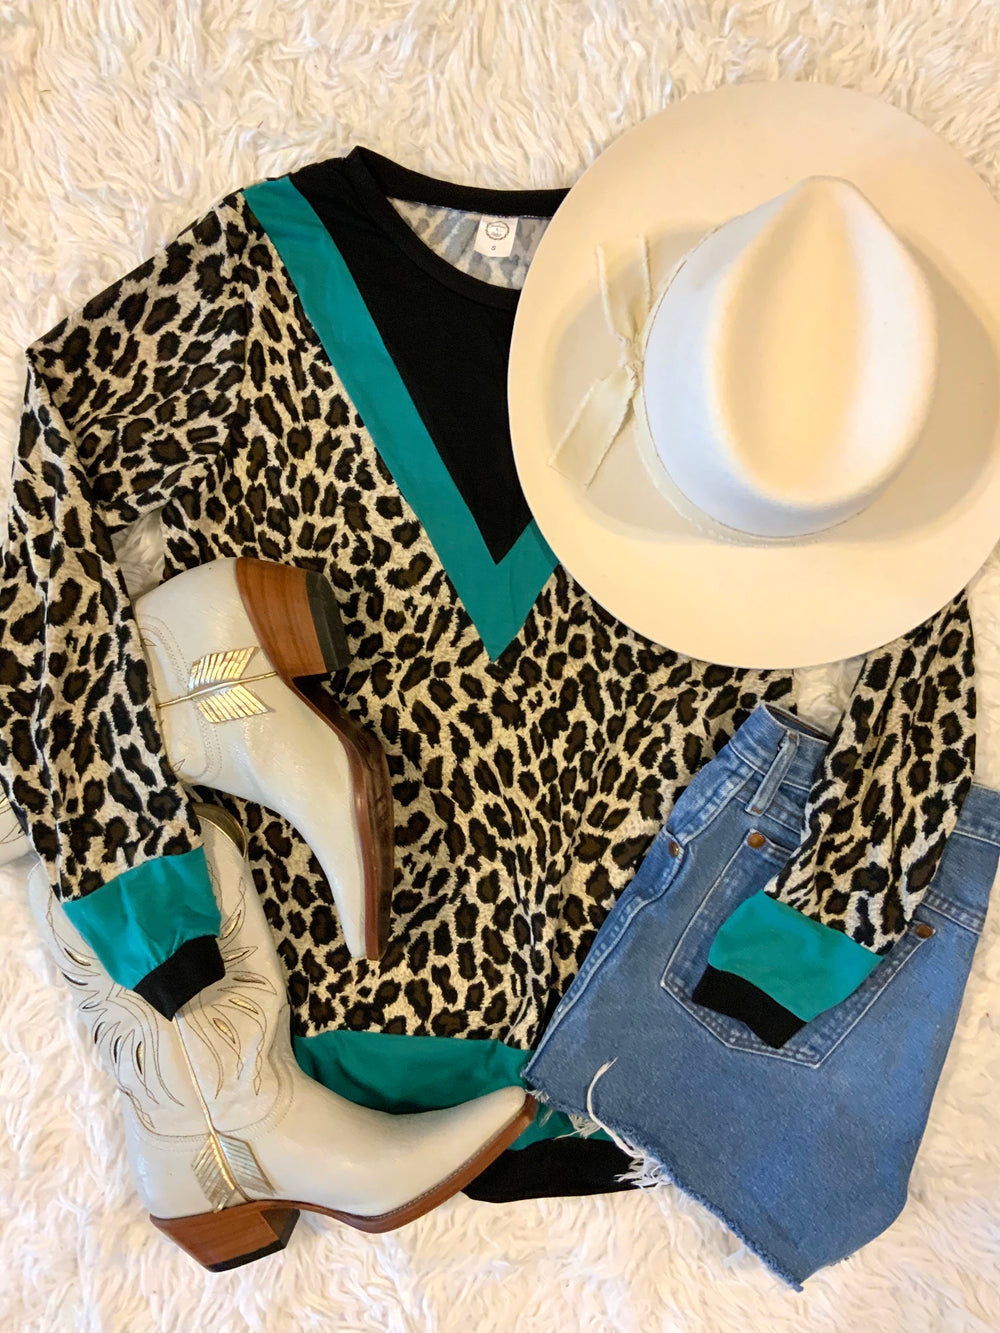 The Wagoner Leopard Print Long Sleeved Top (Turquoise S-3XL)